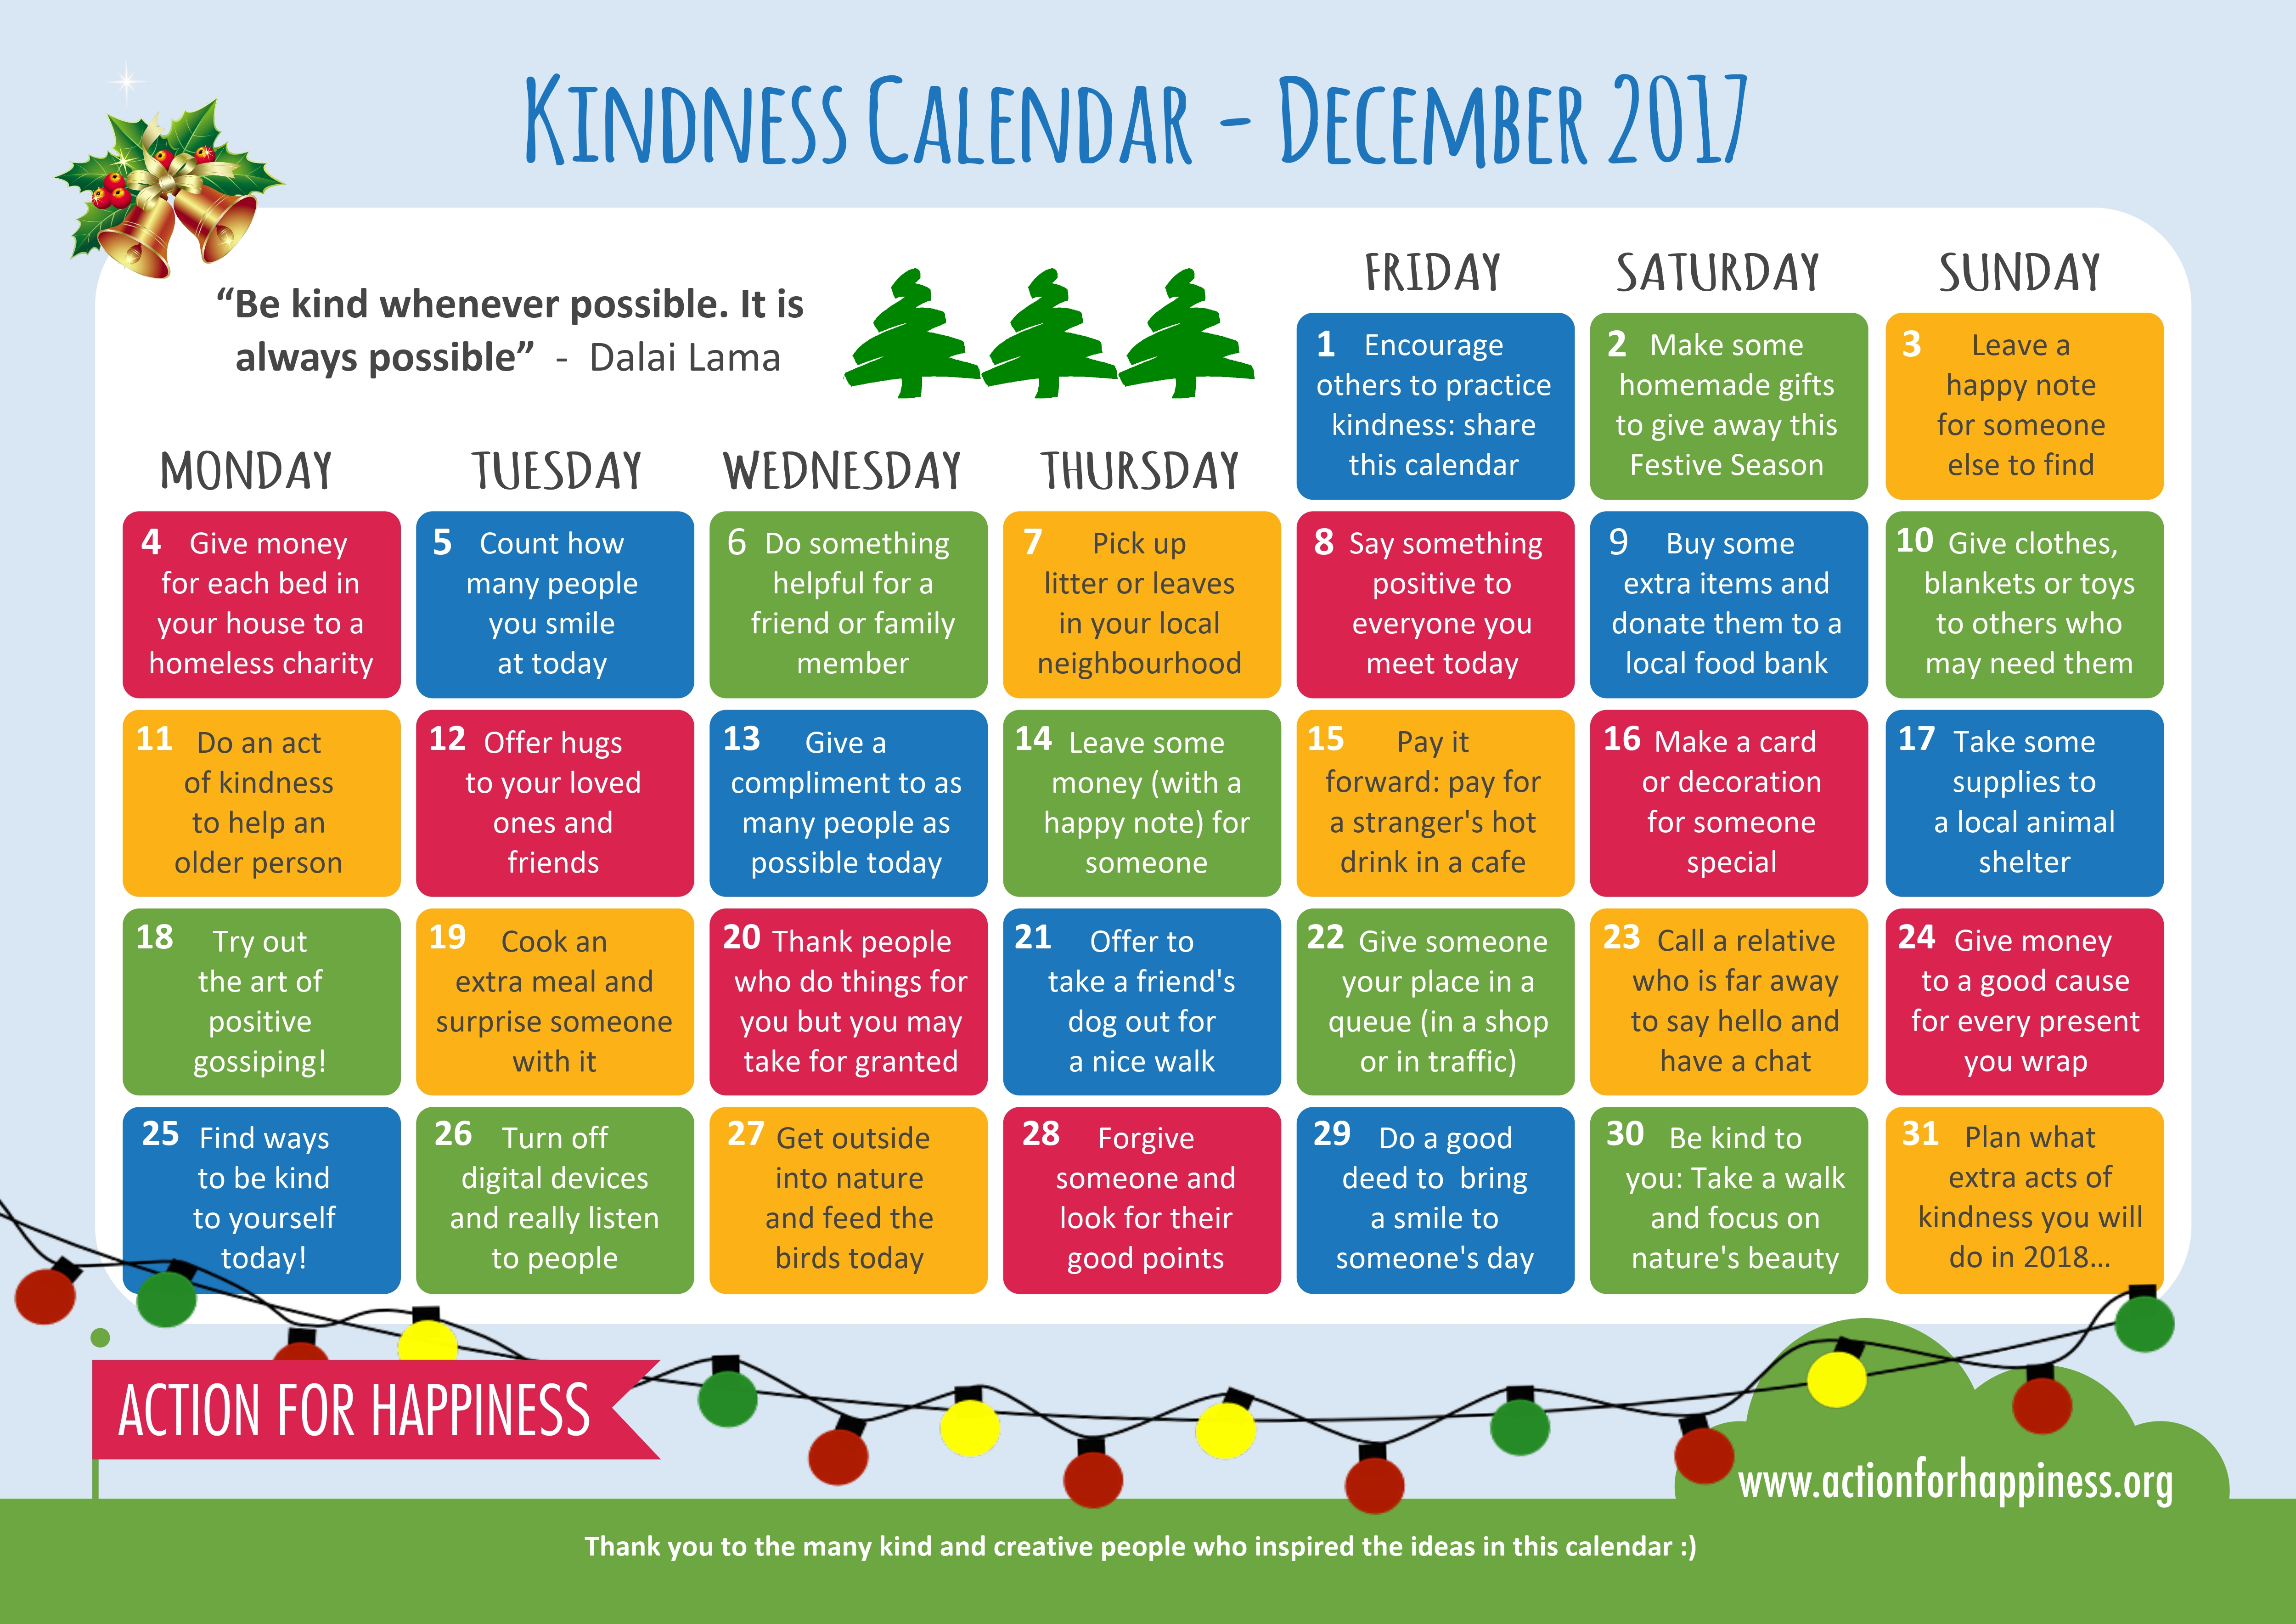 Action For Happiness Kindness Calendar February 2020 teacher | A blog for students on the FDLT at the University of